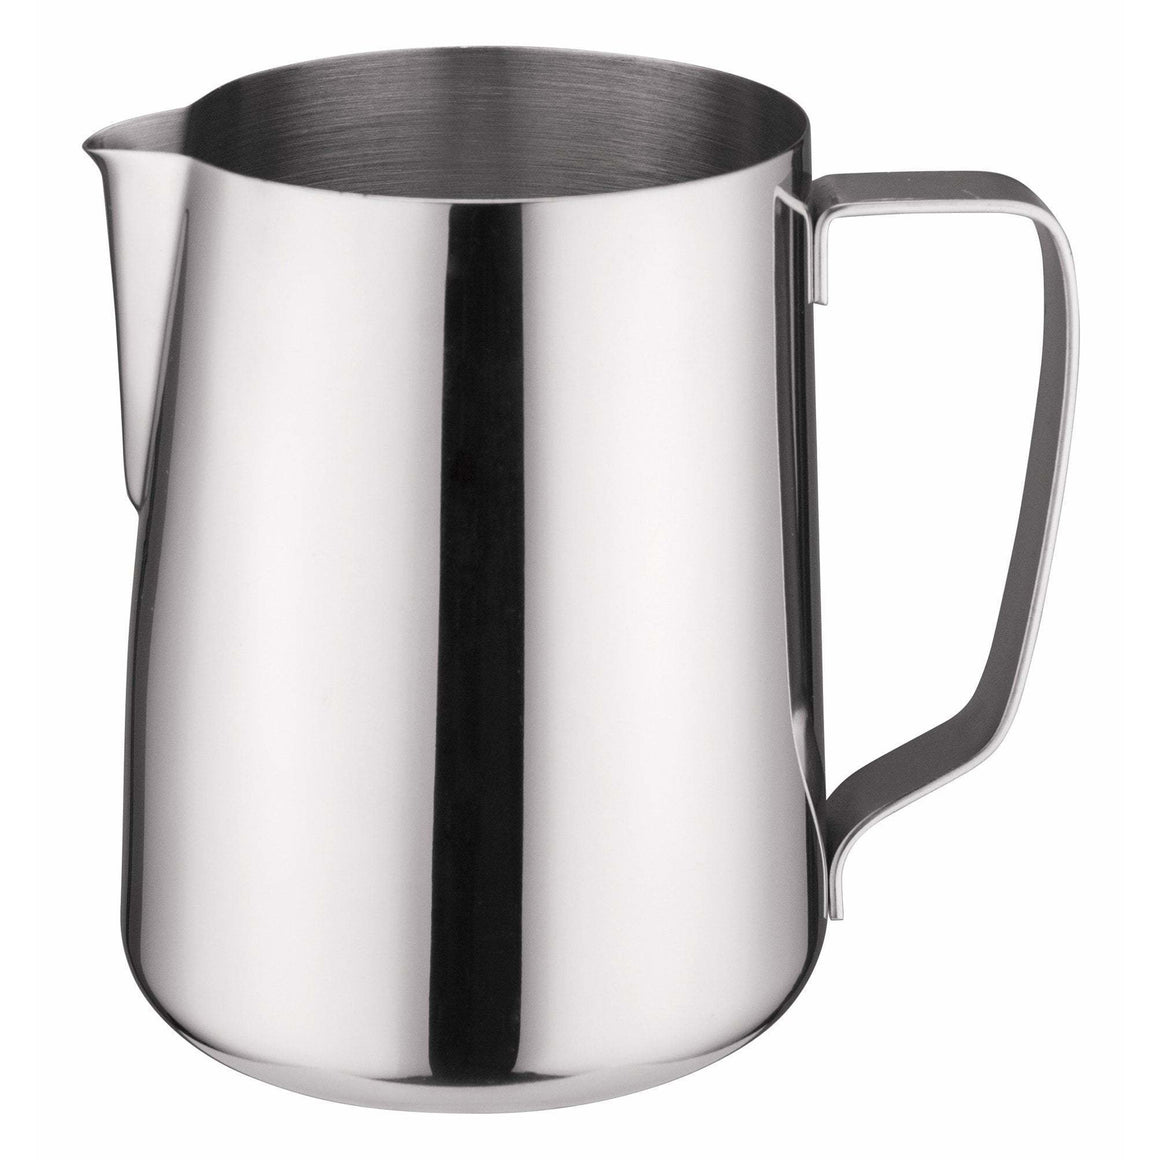 Winco - WP-66 - 66oz Frothing Pitcher, Stainless Steel - Beverage Service - Maltese & Co New and Used  restaurant Equipment